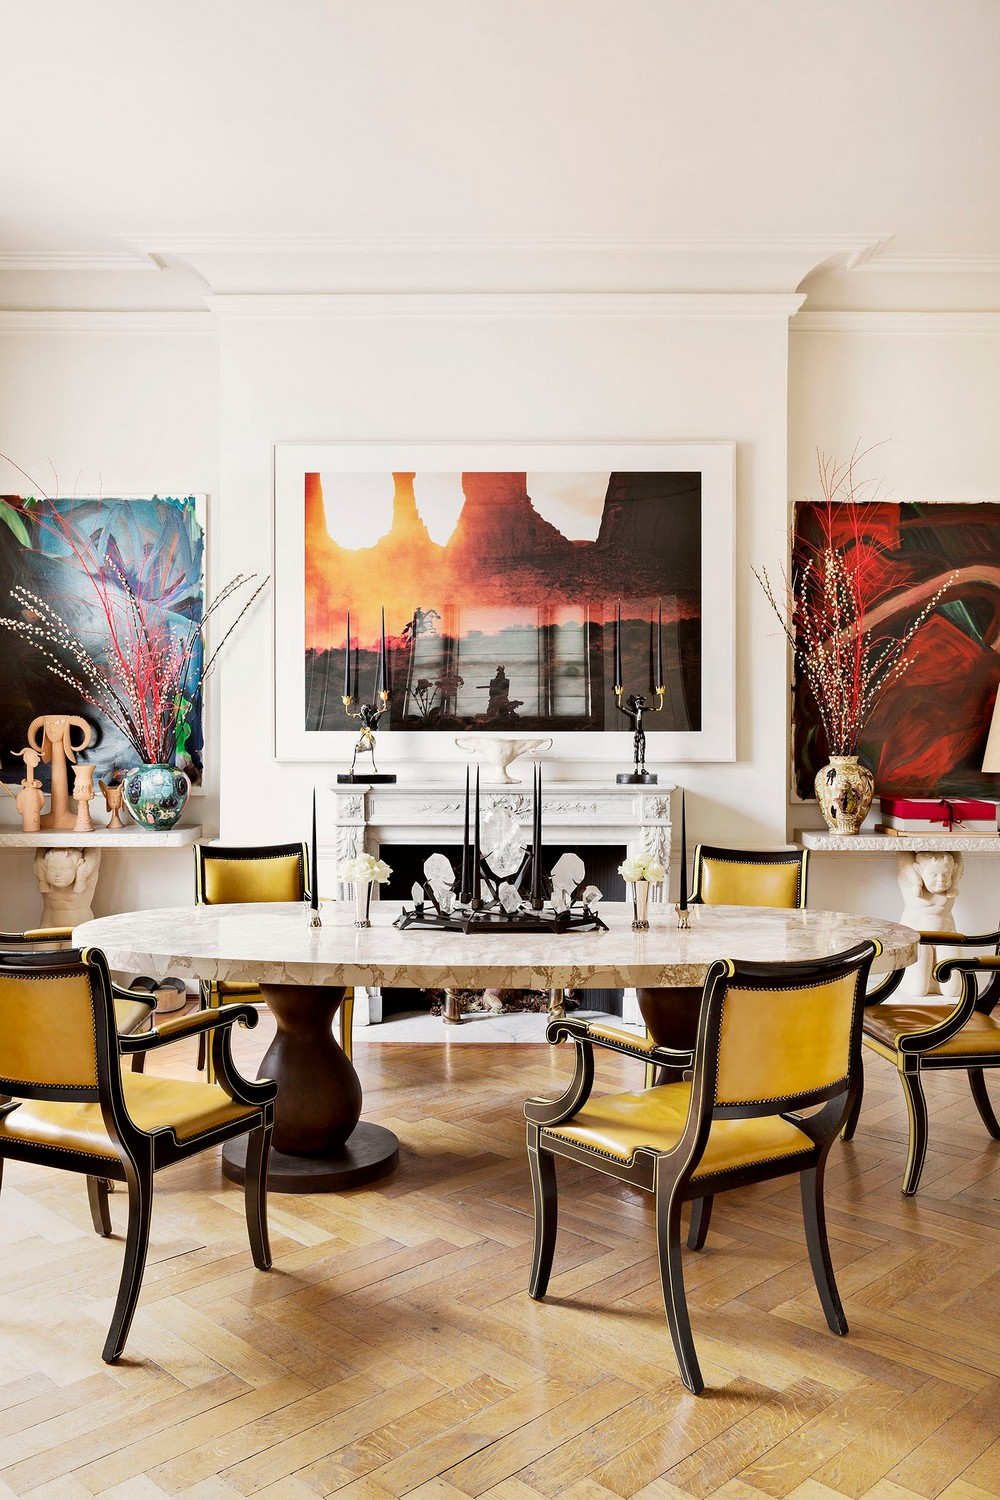 Dining Room Projects by Francis Sultana francis sultana Dining Room Projects by Francis Sultana 5 Dering Hall